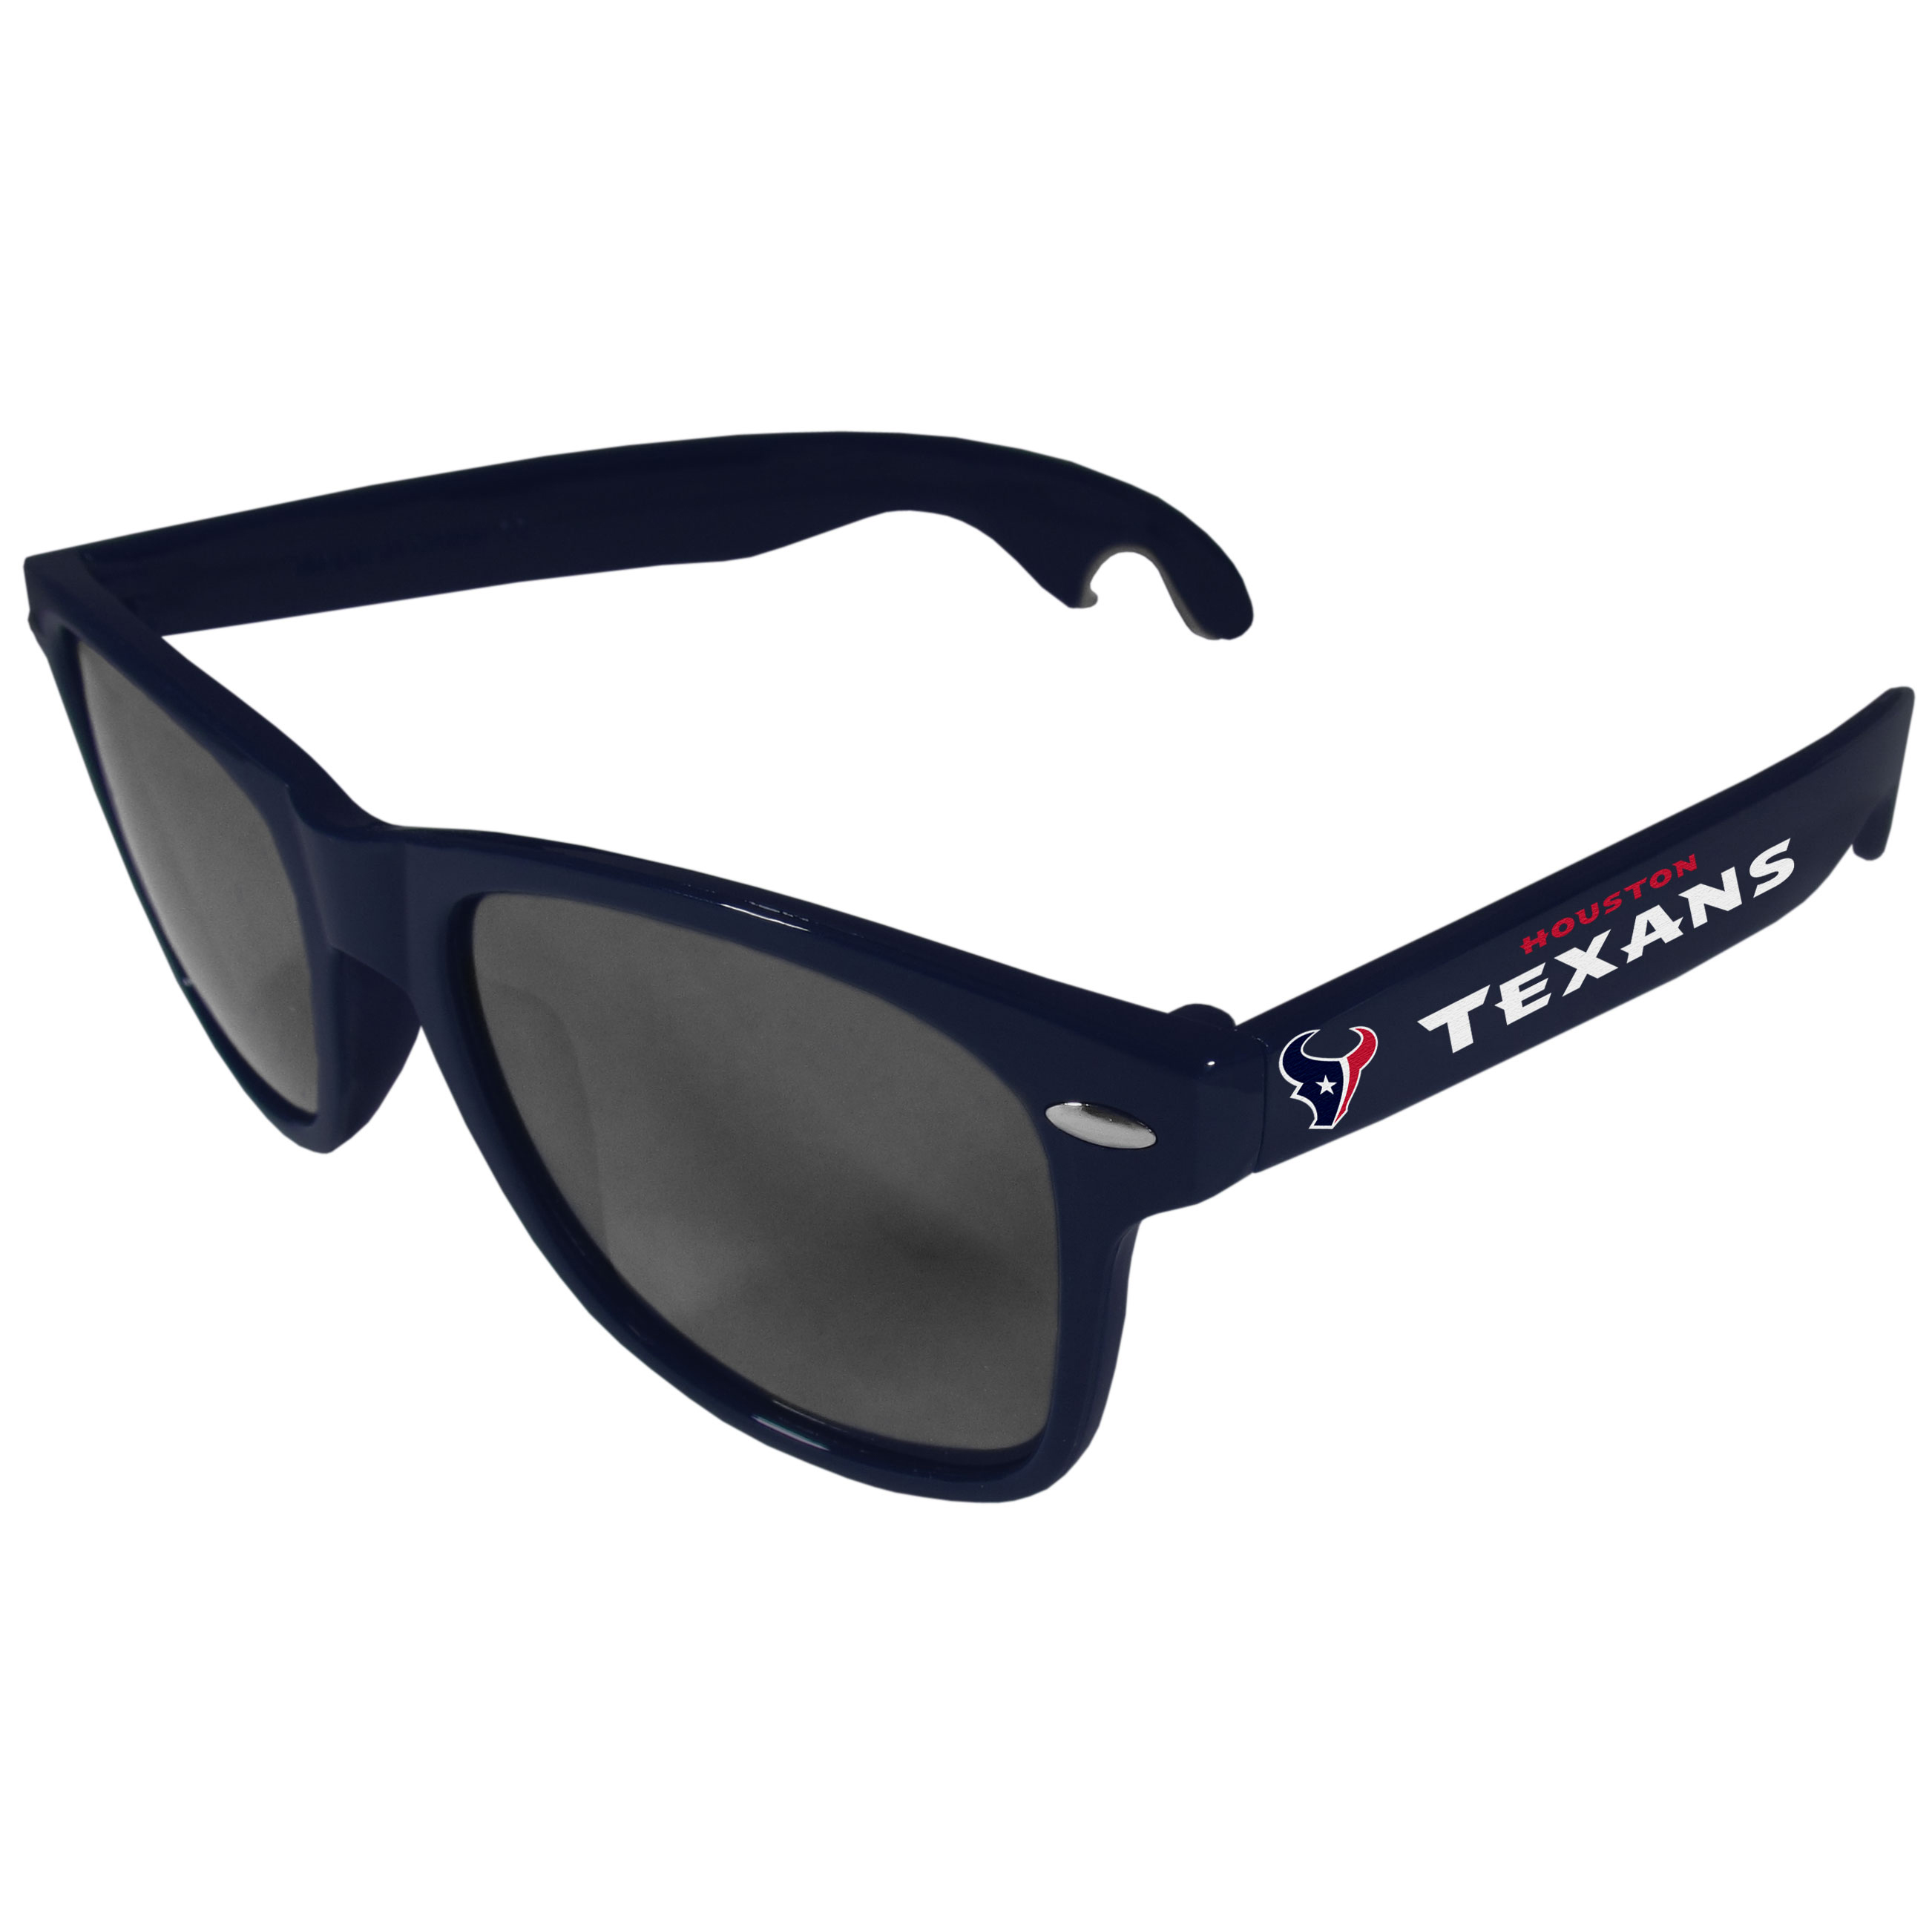 Houston Texans Beachfarer Bottle Opener Sunglasses, Dark Blue - Seriously, these sunglasses open bottles! Keep the party going with these amazing Houston Texans bottle opener sunglasses. The stylish retro frames feature team designs on the arms and functional bottle openers on the end of the arms. Whether you are at the beach or having a backyard BBQ on game day, these shades will keep your eyes protected with 100% UVA/UVB protection and keep you hydrated with the handy bottle opener arms.